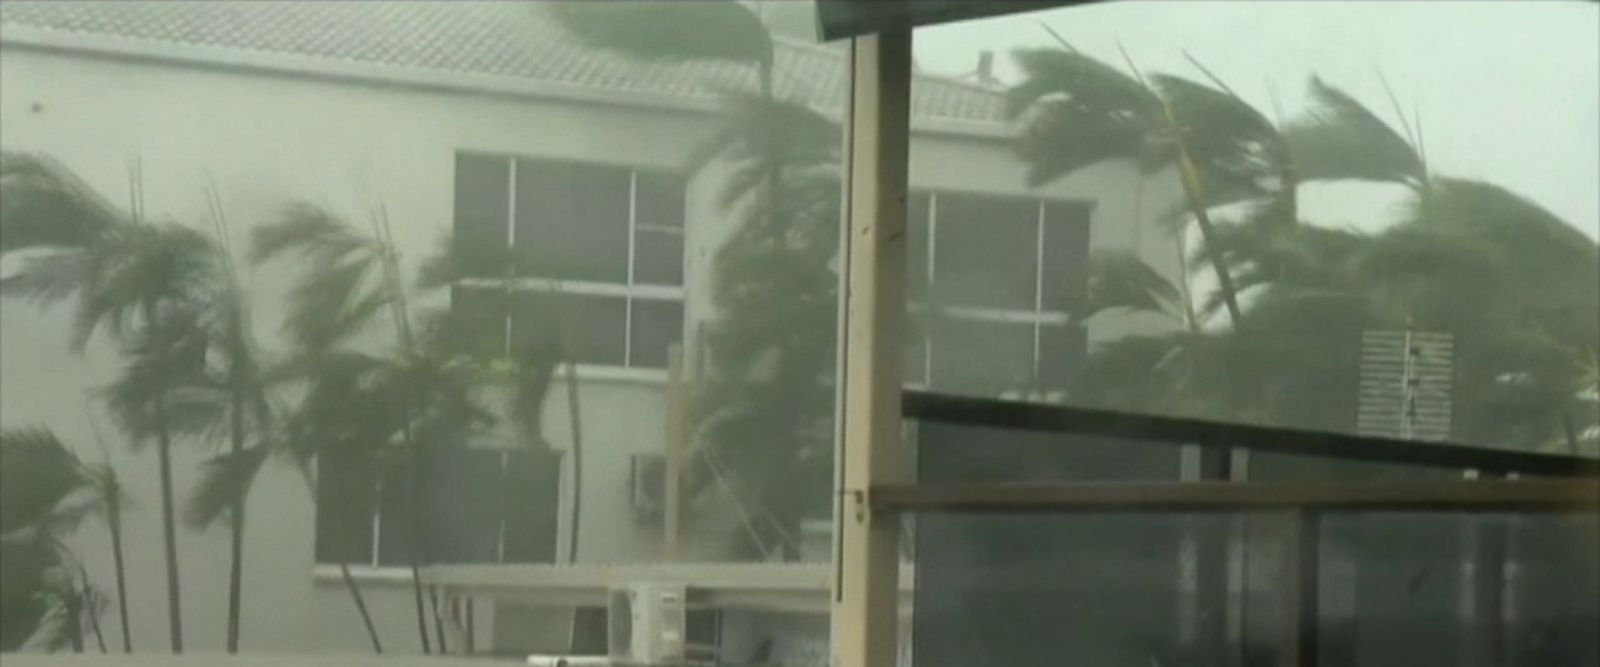 VIDEO: The powerful Cyclone Debbie made landfall near a resort town in Queensland state.